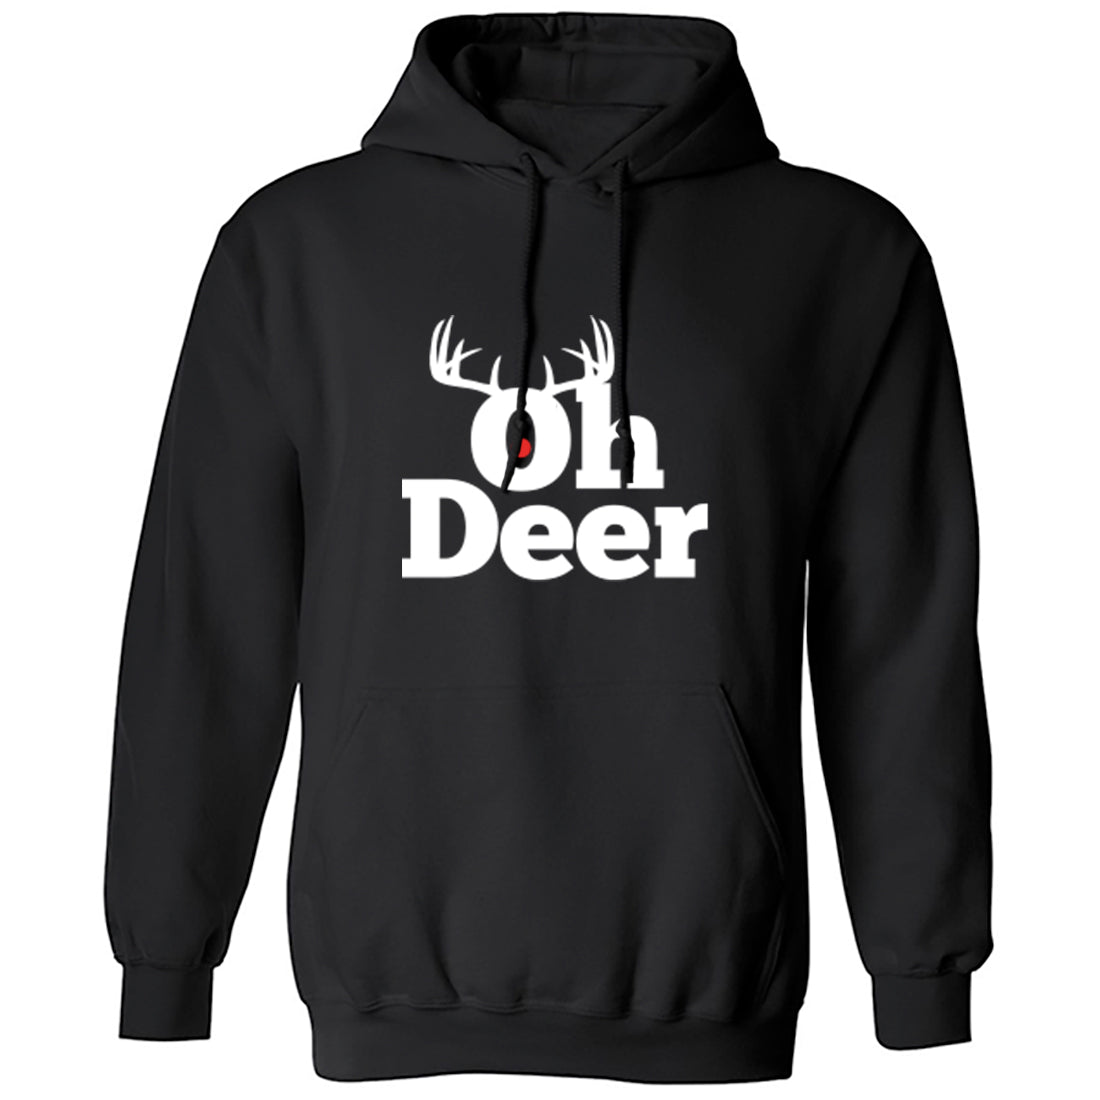 Oh Deer Unisex Hoodie K1348 - Illustrated Identity Ltd.